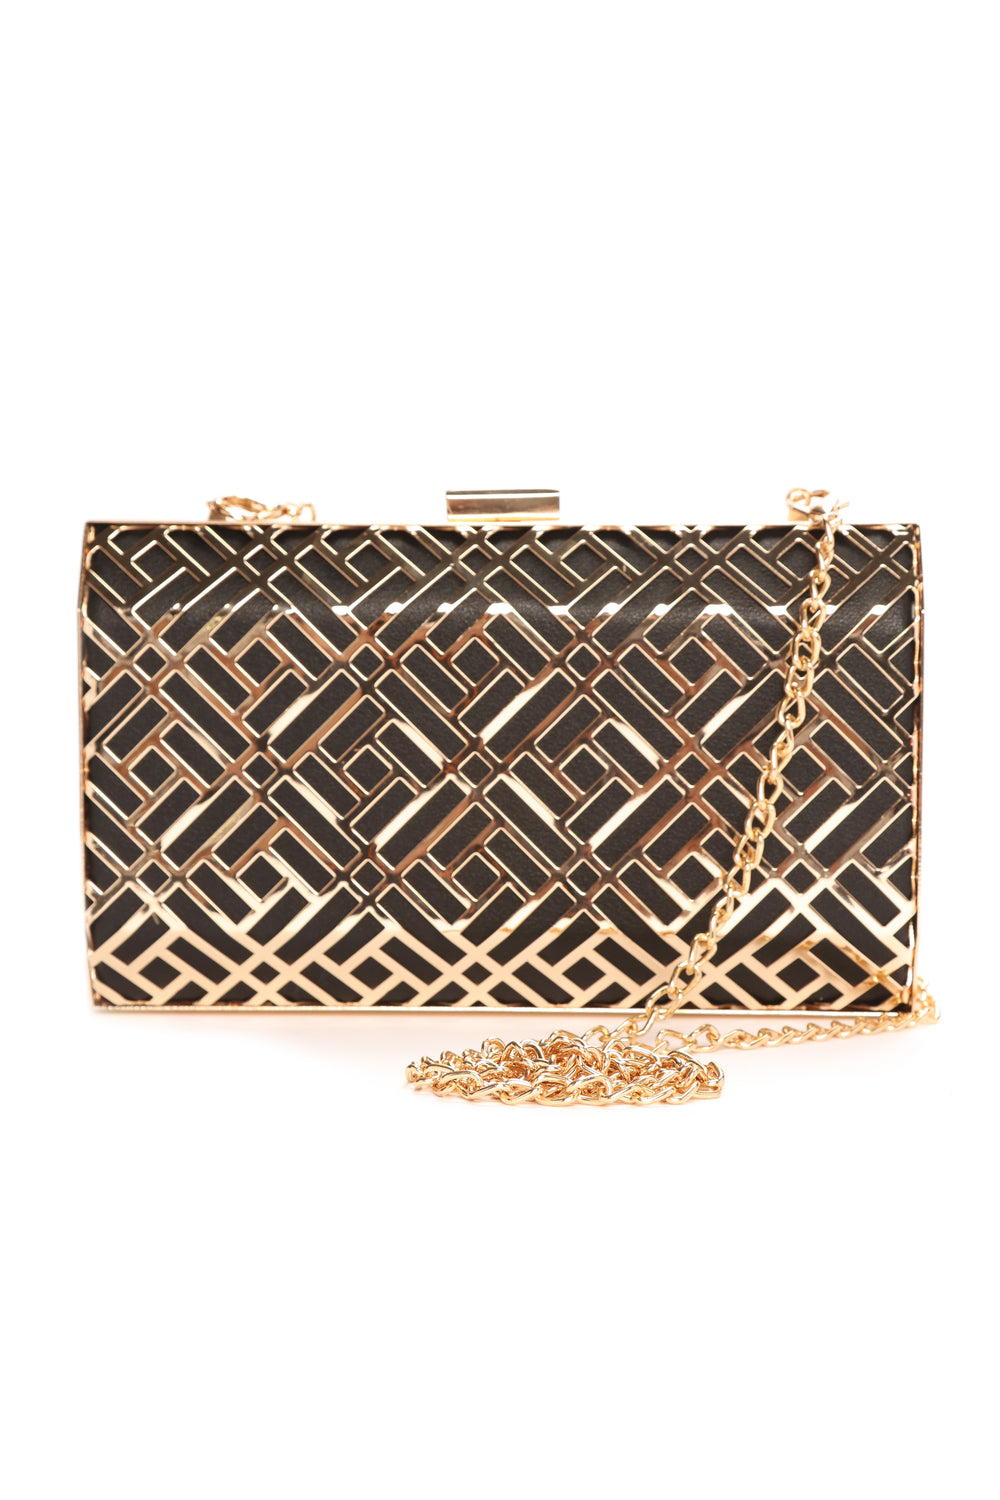 Case Closed Clutch - Black